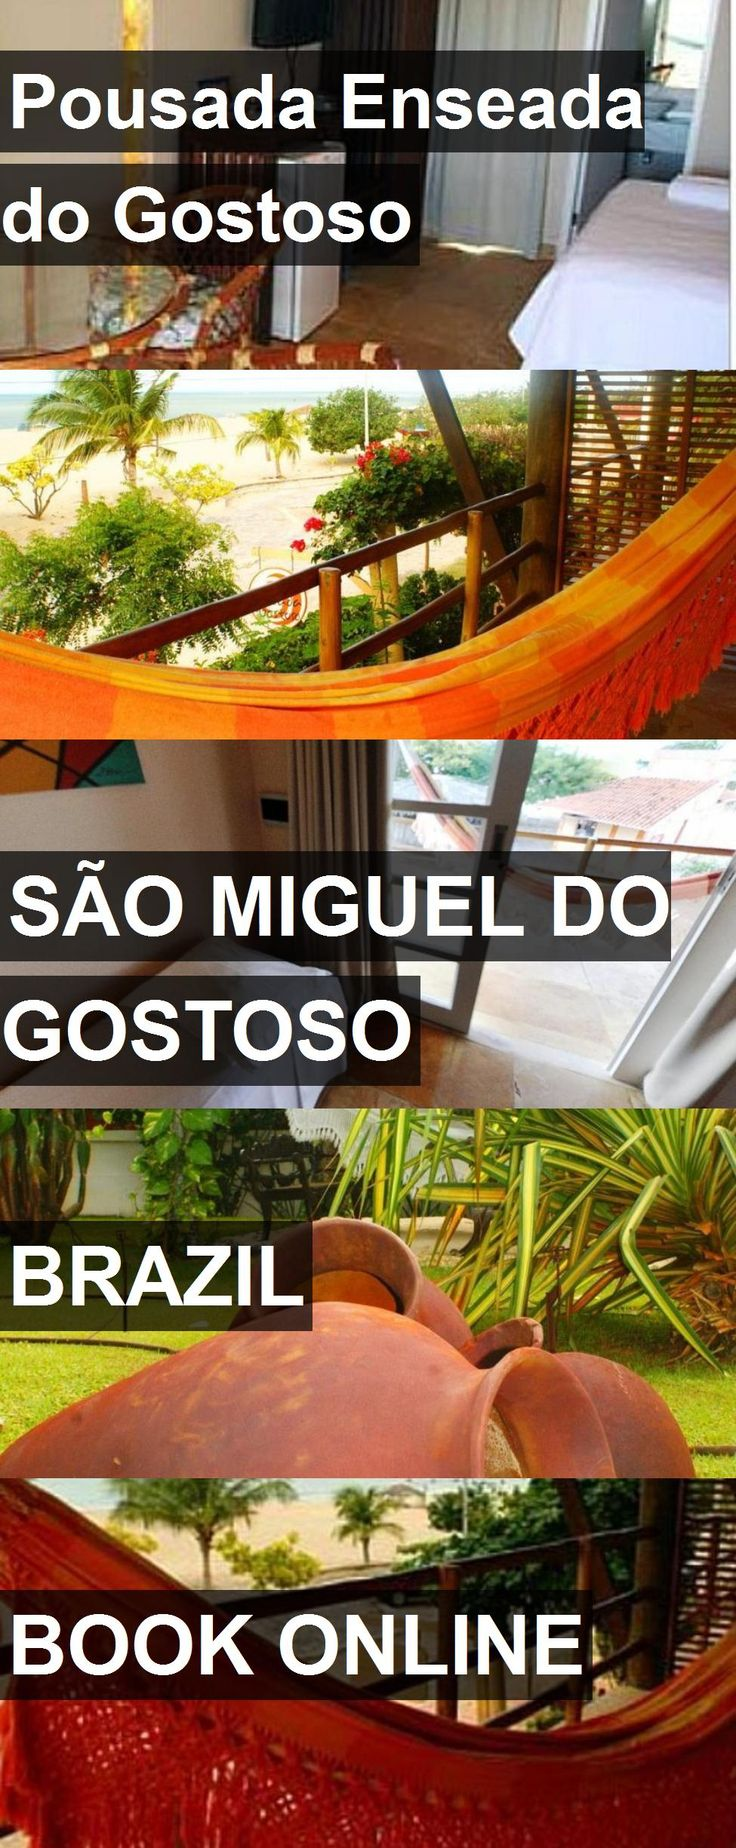 Hotel Pousada Enseada do Gostoso in São Miguel do Gostoso, Brazil. For more information, photos, reviews and best prices please follow the link. #Brazil #SãoMigueldoGostoso #travel #vacation #hotel